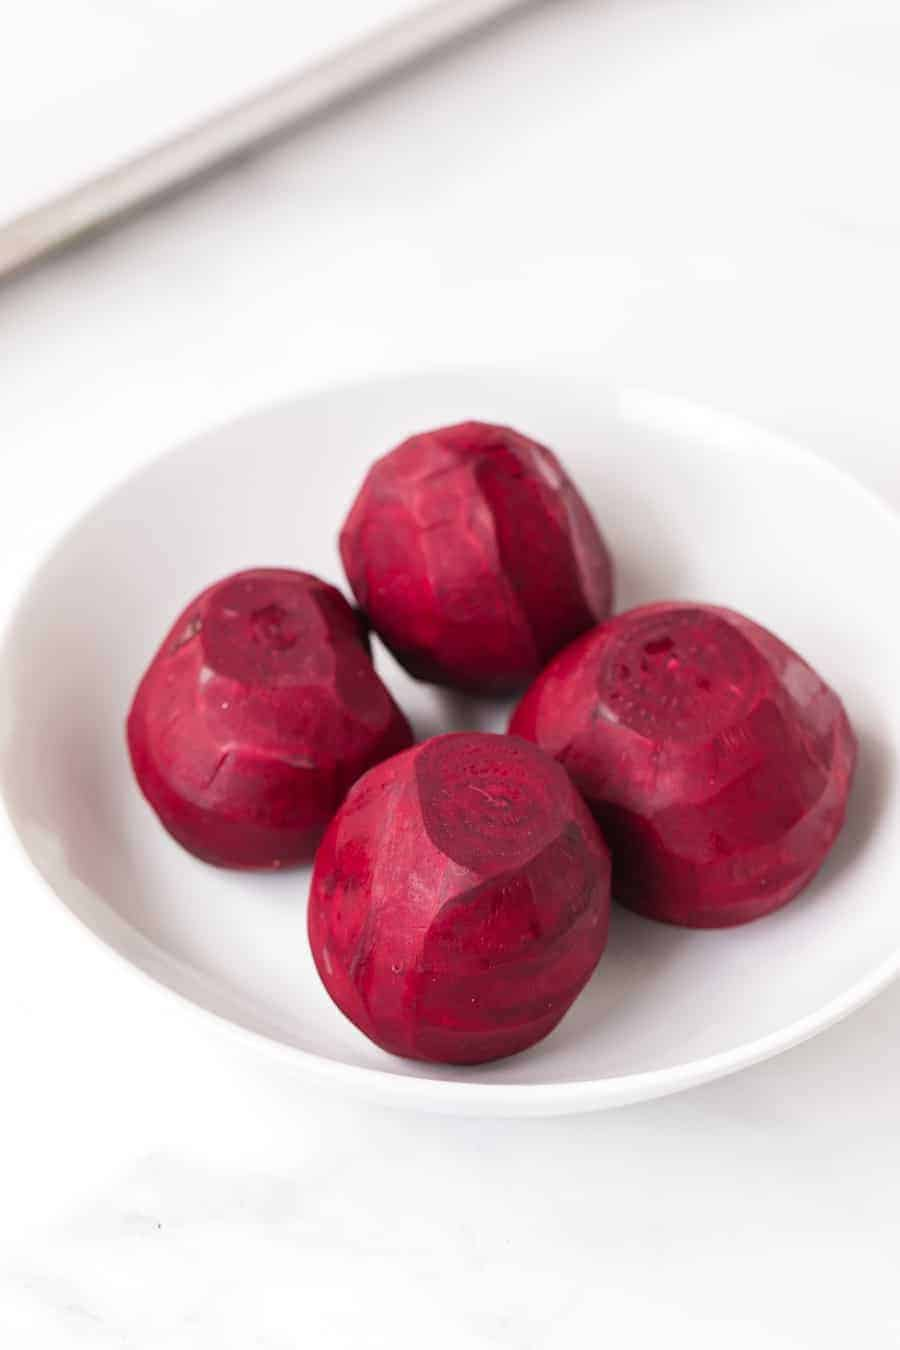 skinned uncooked beets in round white bowl